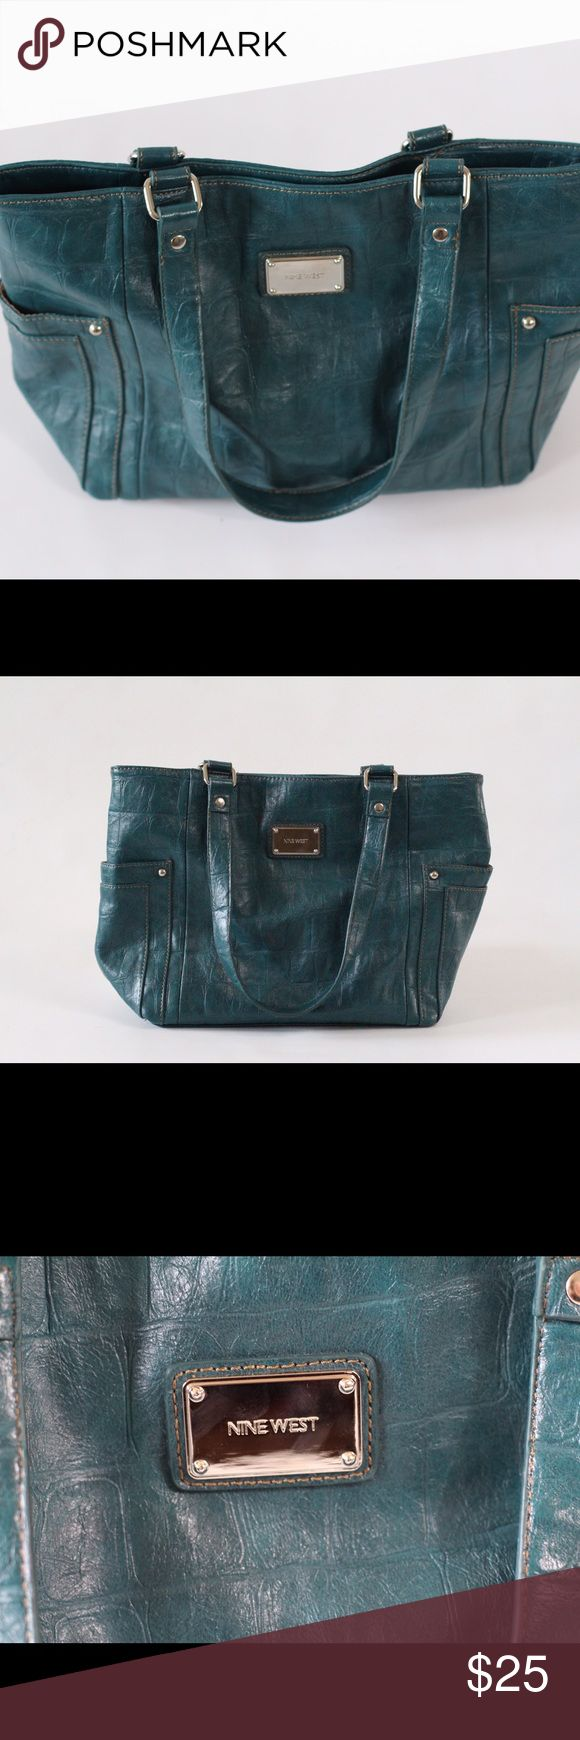 Stylish Nine West Shoulder Bag Authentic Nine West purse in great condition. Beautiful turquoise color, medium to large size. Nine West Bags Shoulder Bags